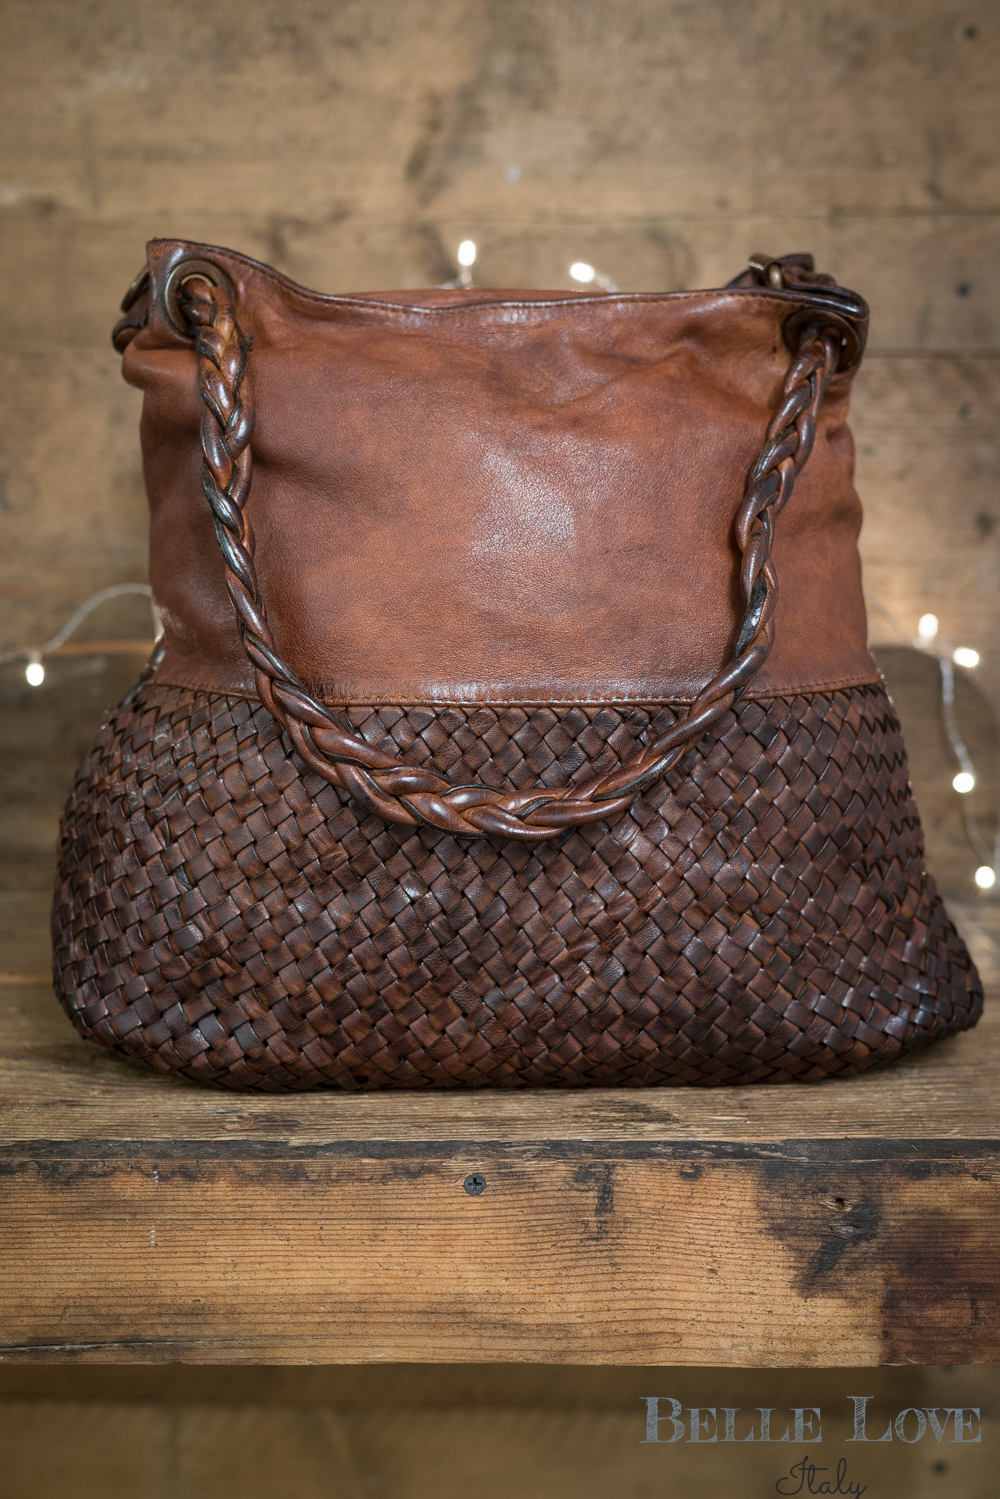 Belle Love Italy Tanned Leather Slouch Bag